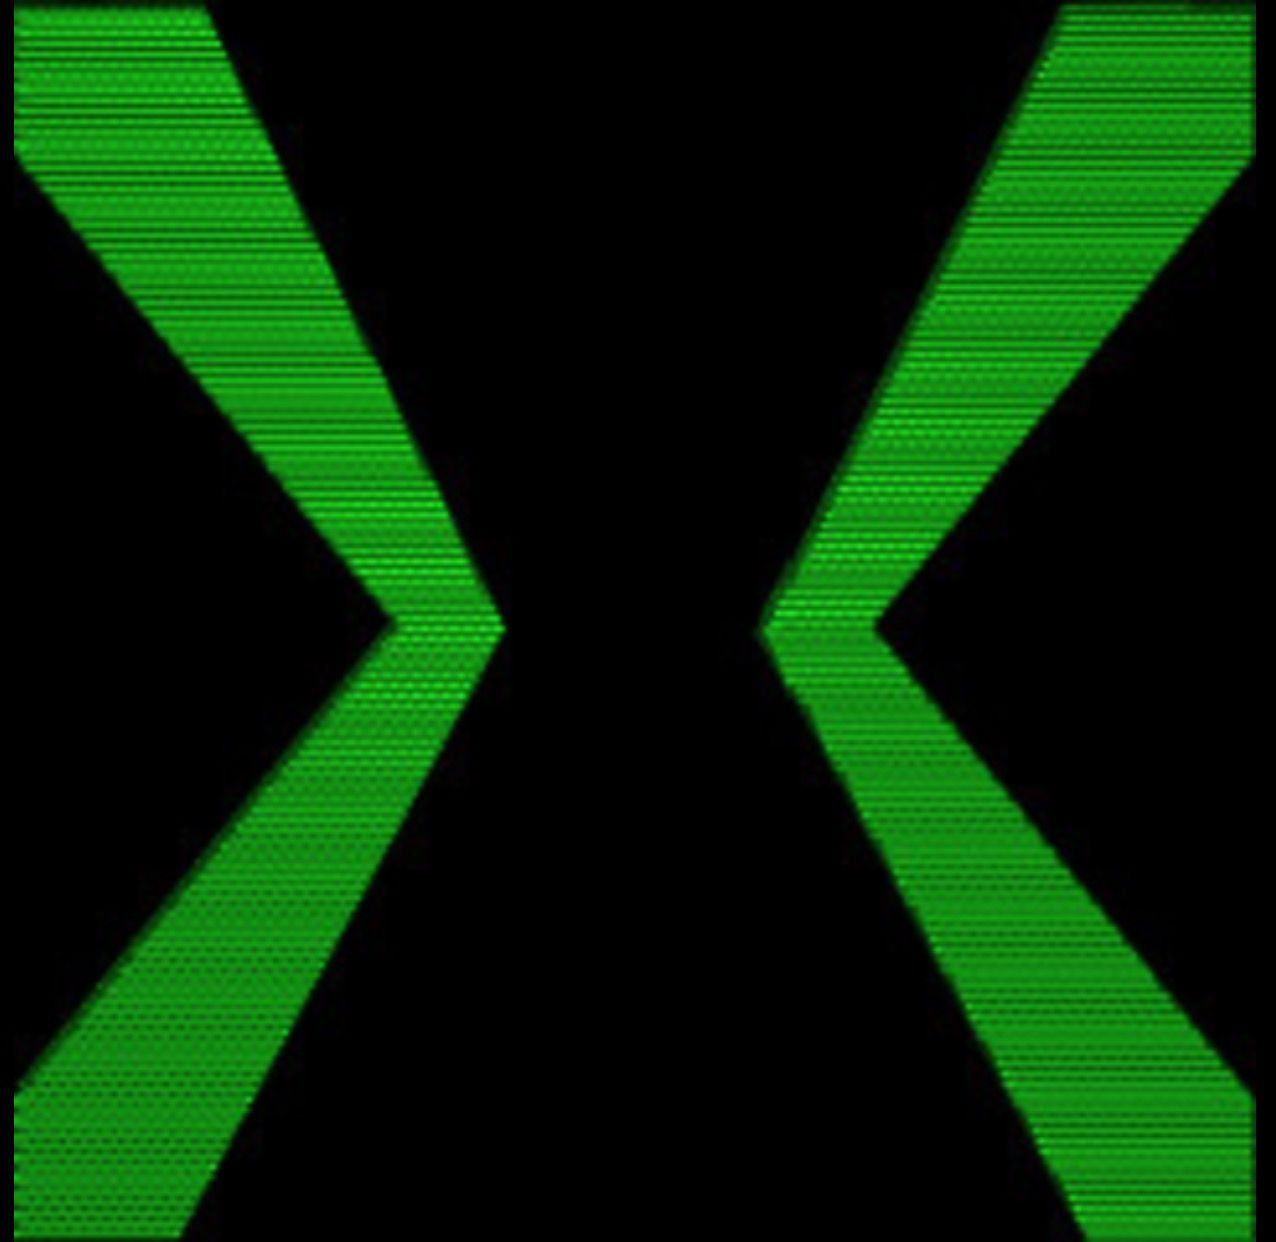 Apple watch face omniverse omnitrix symbol ben 10 omiverse create and customize your apple watch with beautiful faces custom faces iphone app lets you set up personalized faces on your apple watch buycottarizona